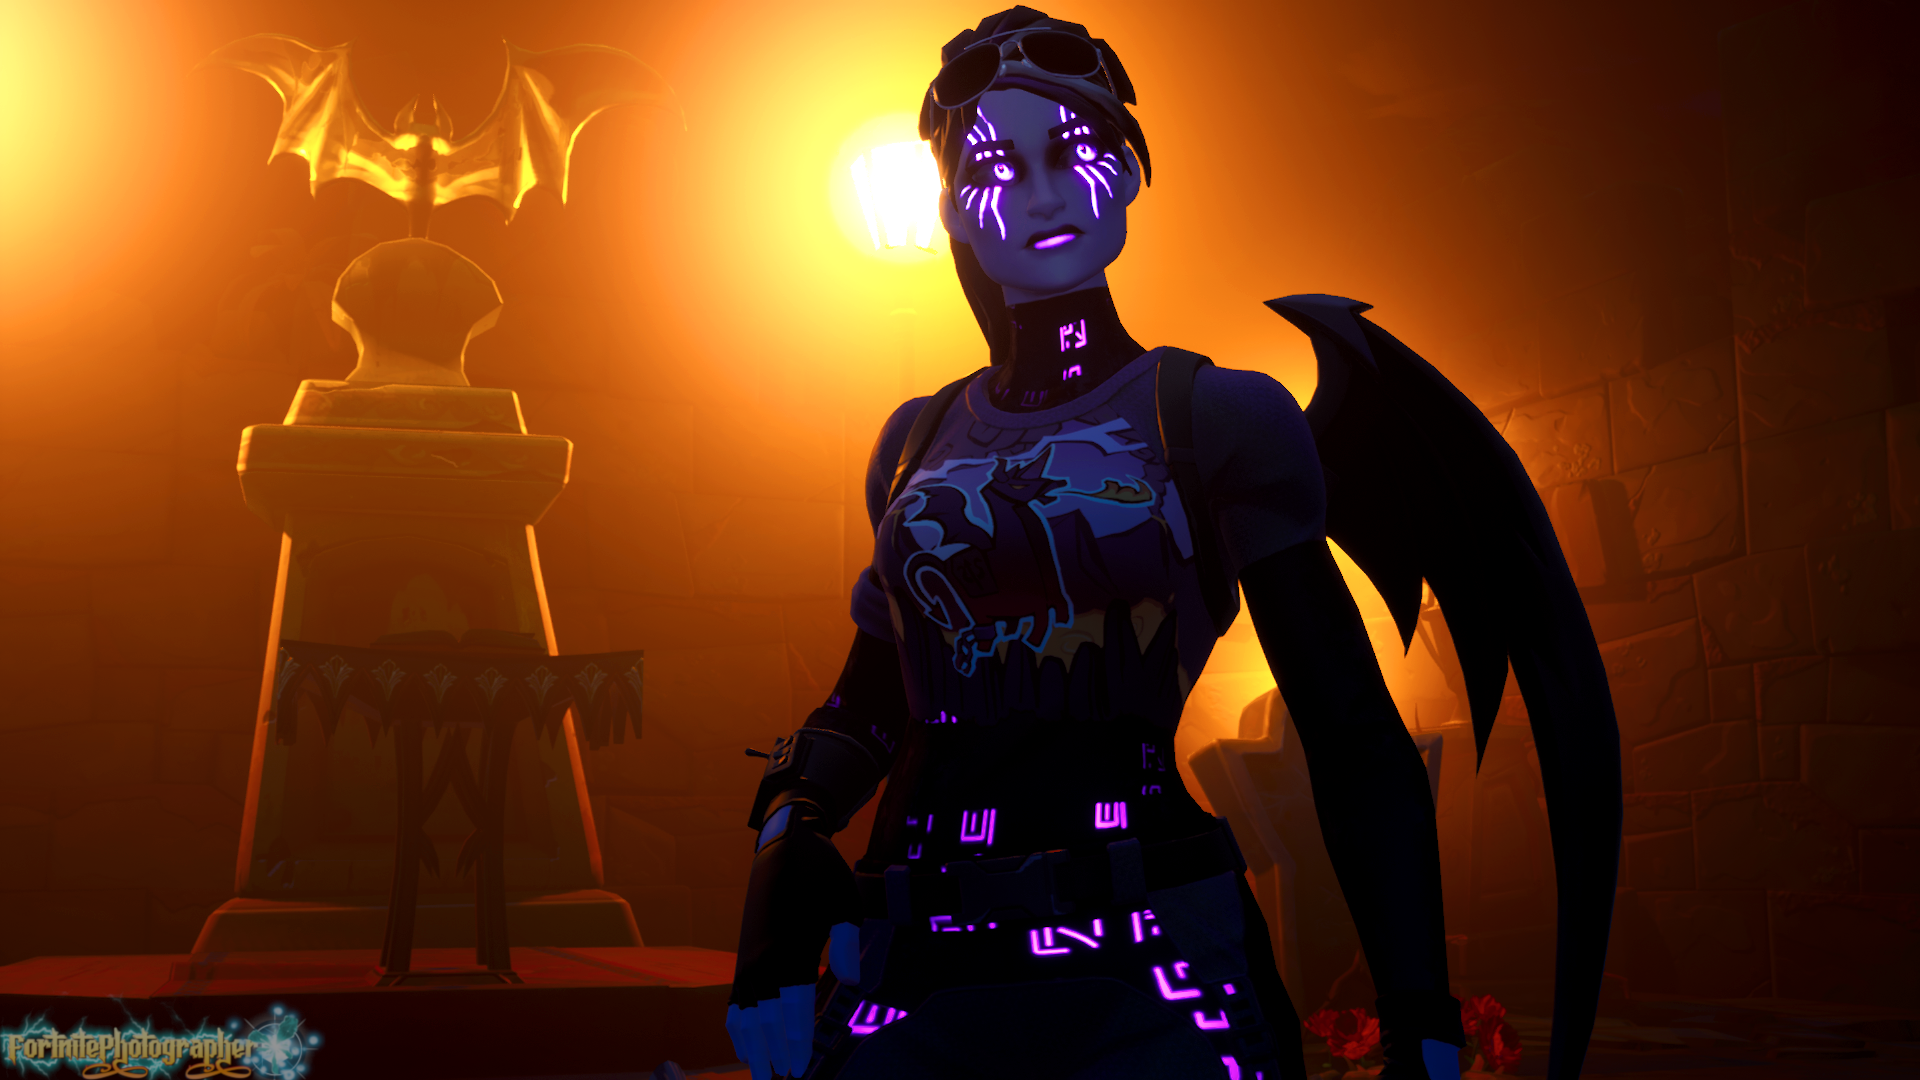 Alone In The Dark Dark Bomber Shots Thanks For All The Support And Sharing Dark Bomber Set 1 Alone In The Dark Dark Skin Background Images Wallpapers